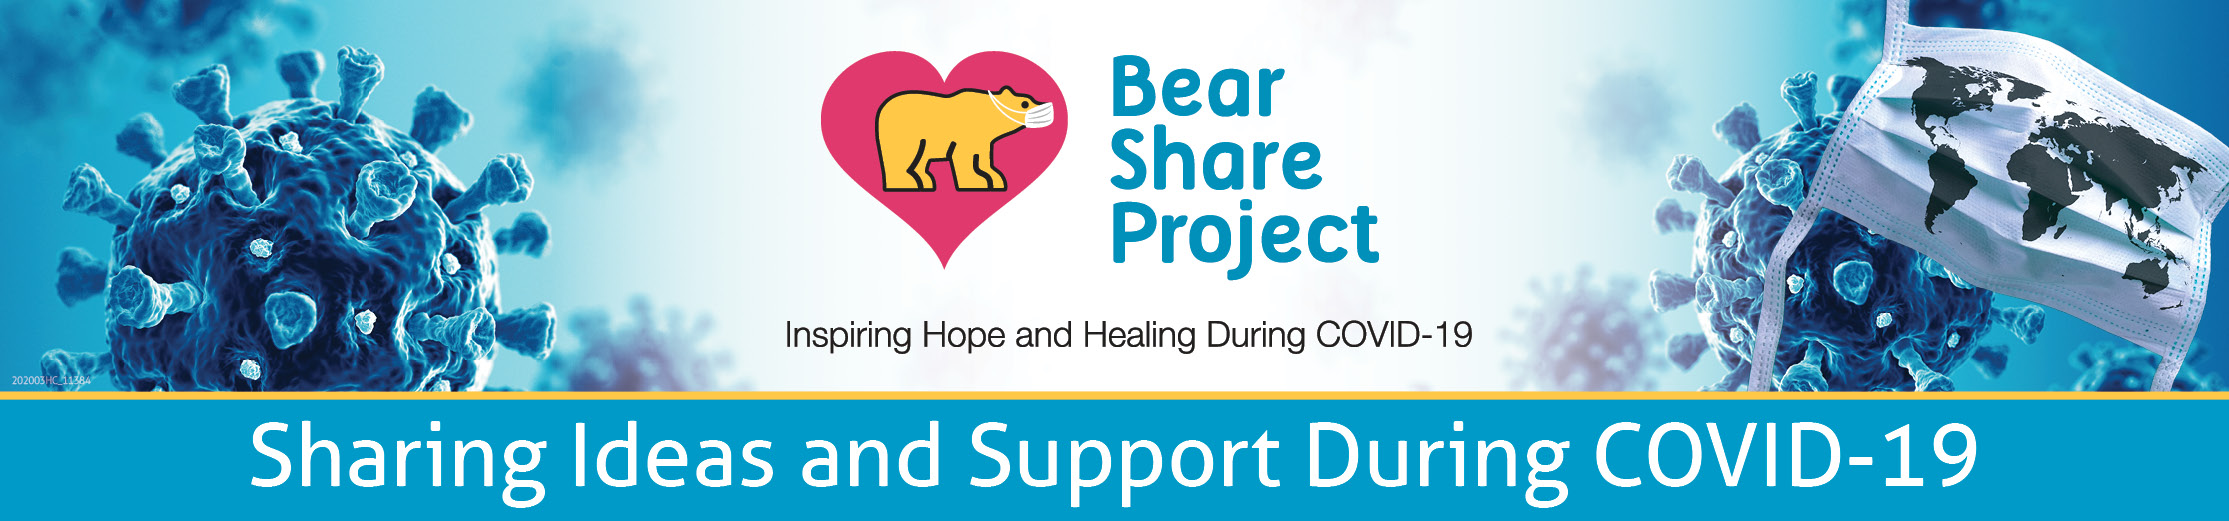 Bear Share Project